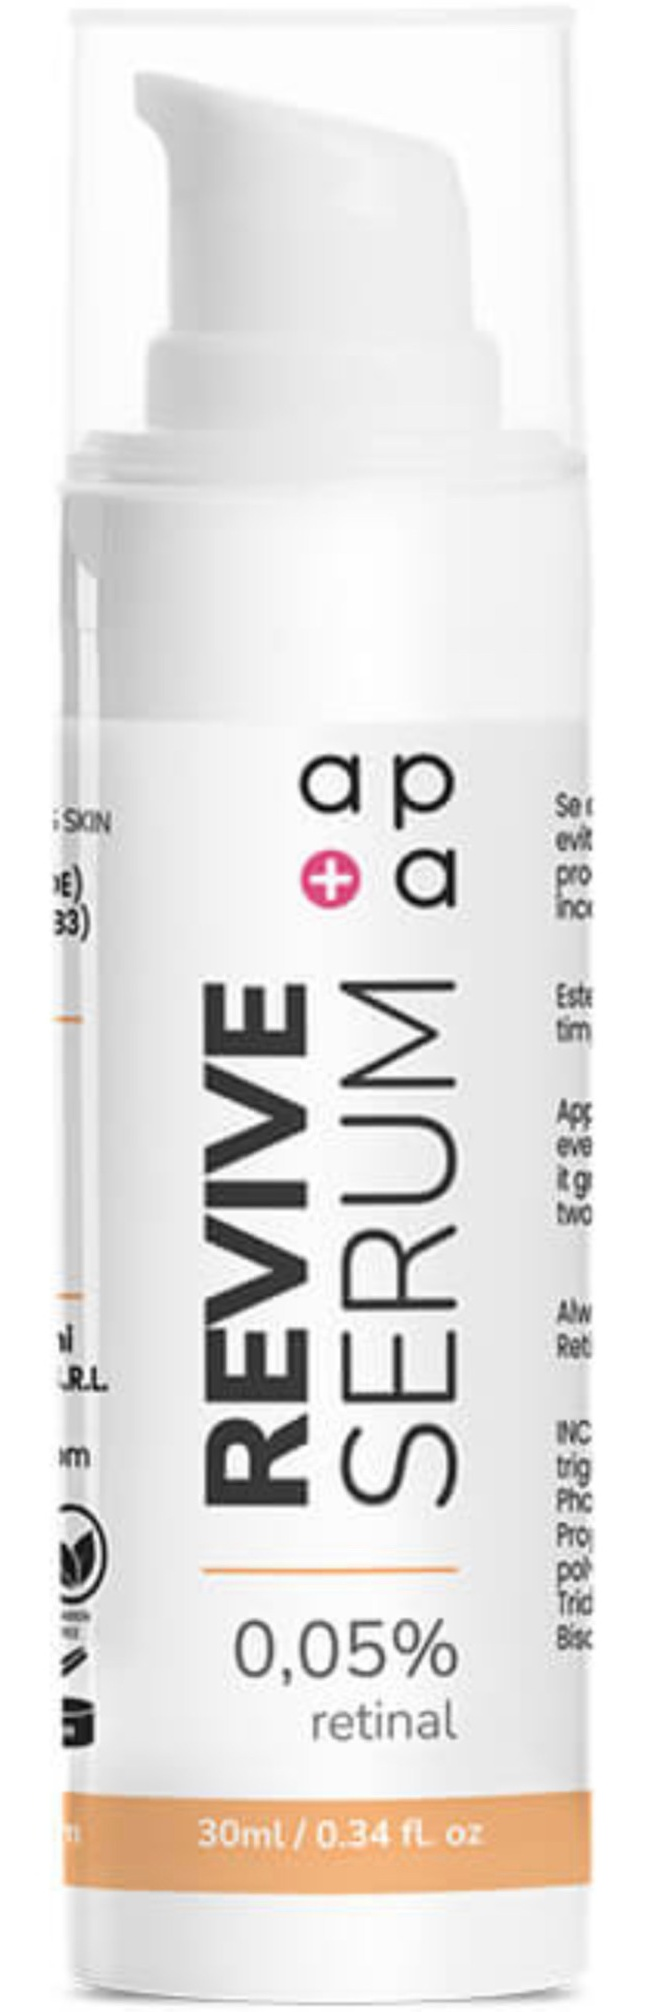 Synergy Therm Revive Serum